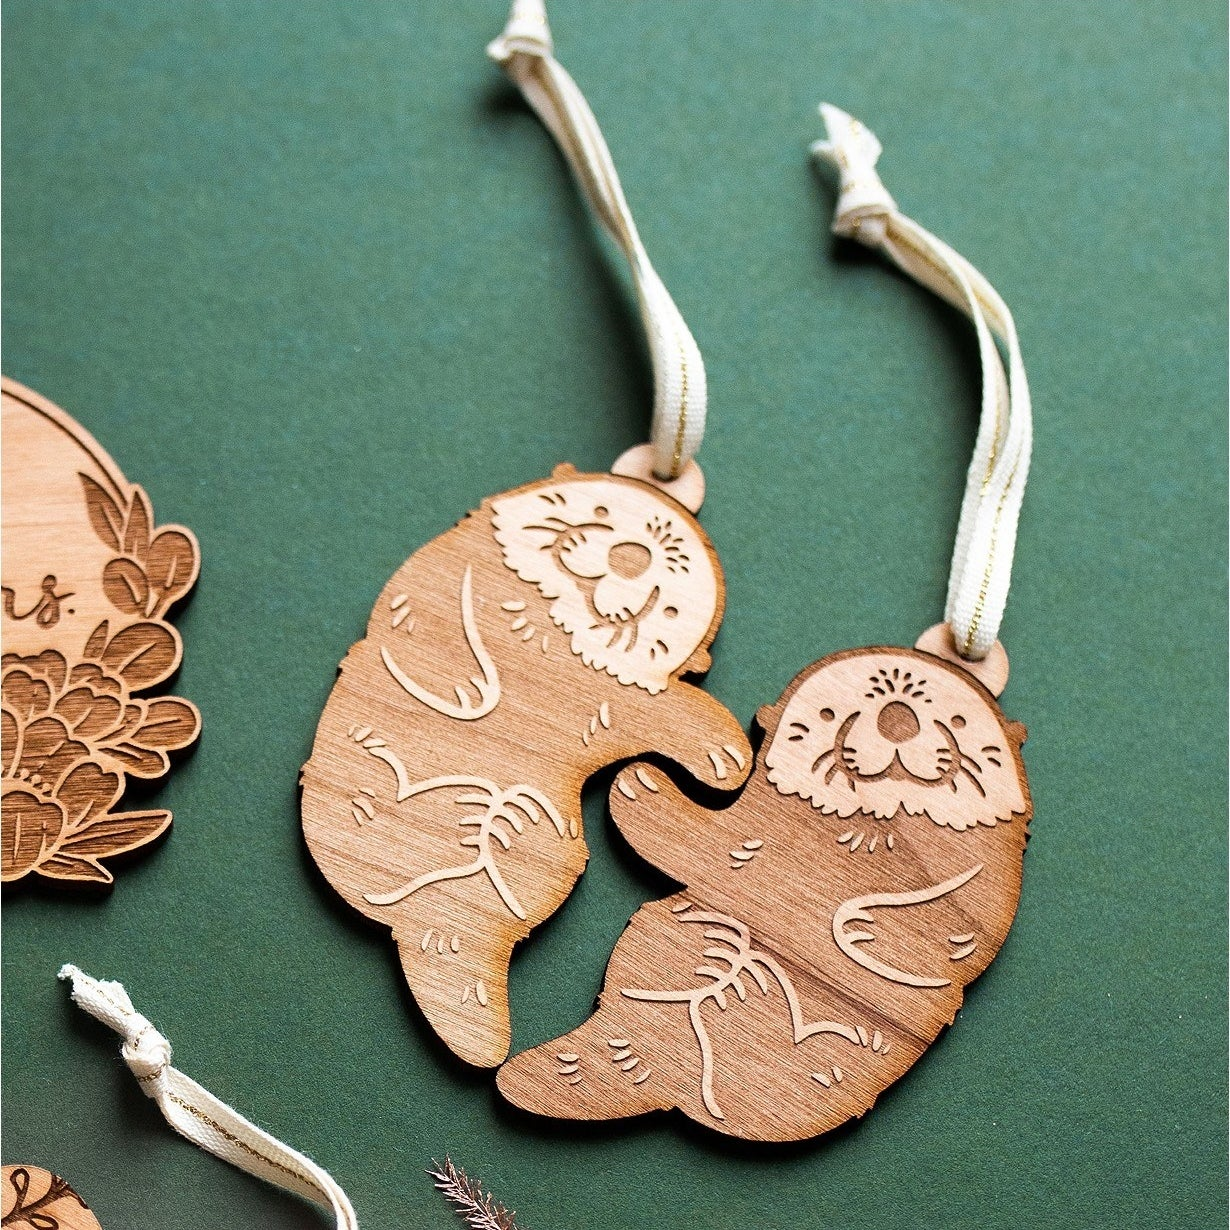 The otter ornaments